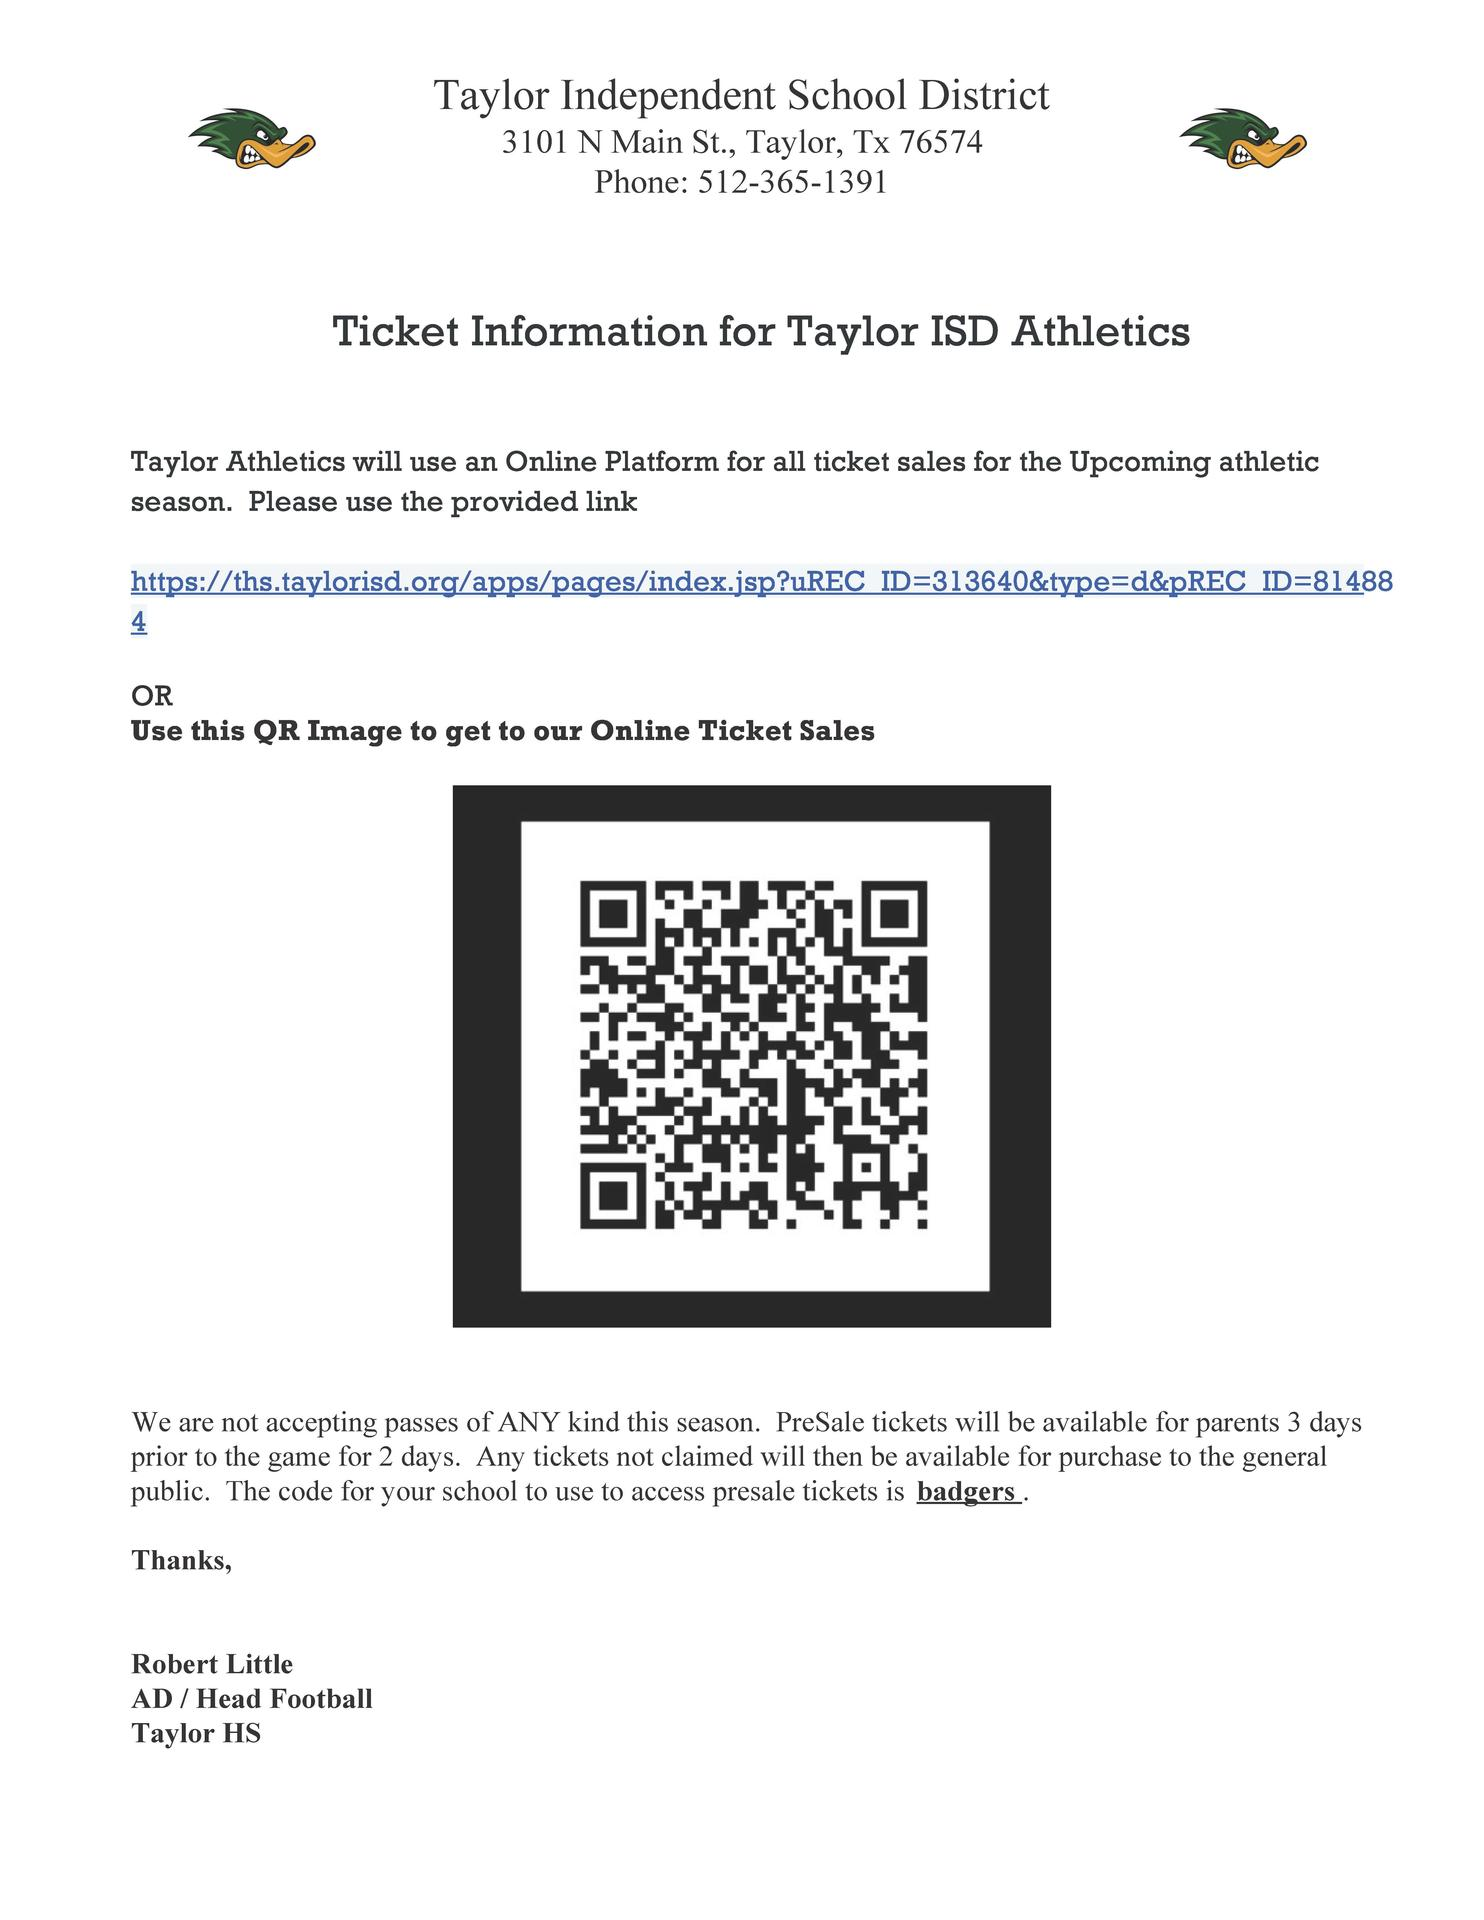 Taylor ISD Athletic Ticket Sales Information